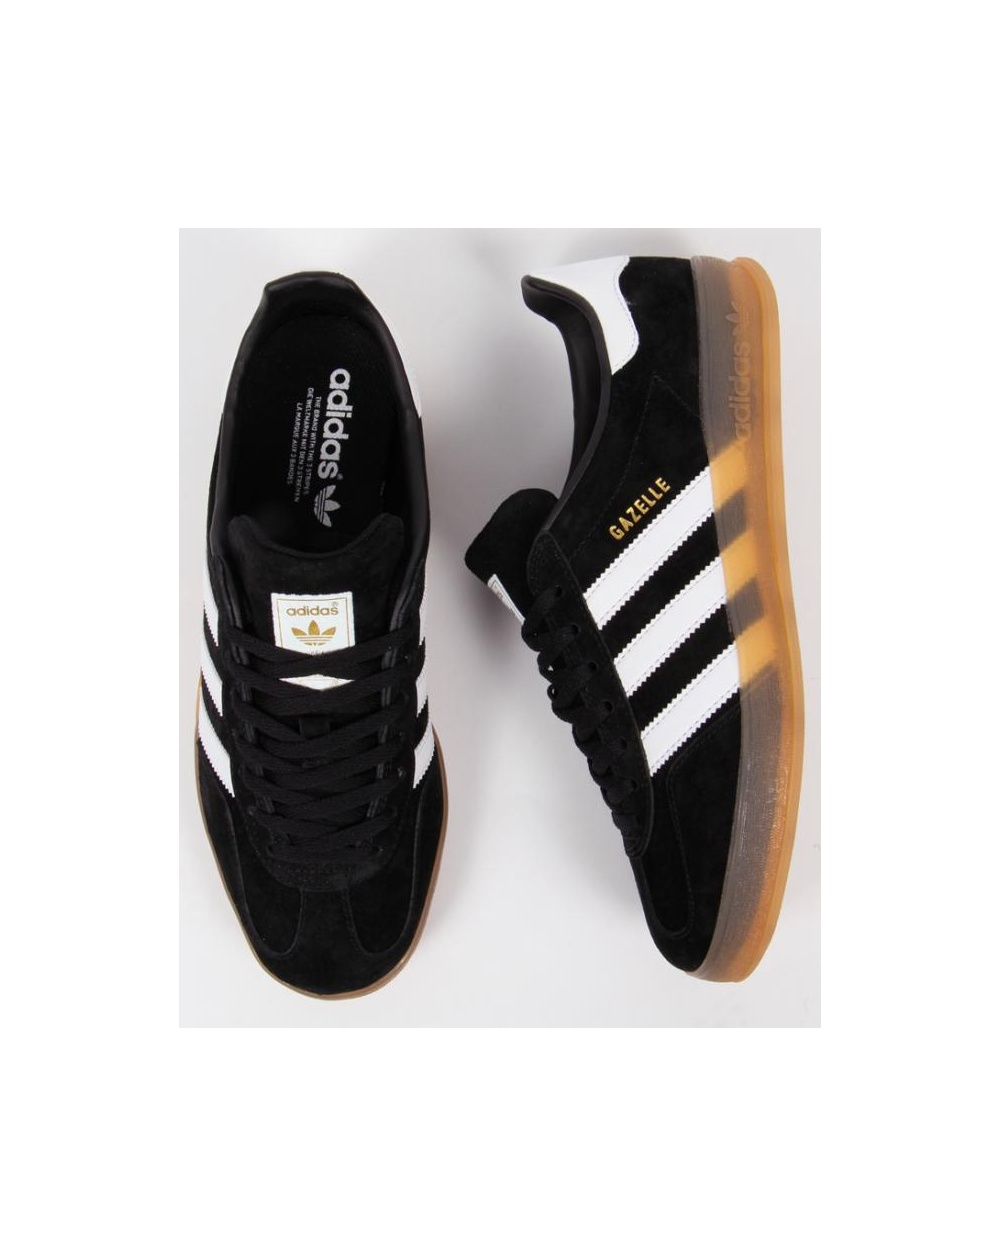 Adidas Gazelle Gum Sole Black Trainers | shoes in 2019